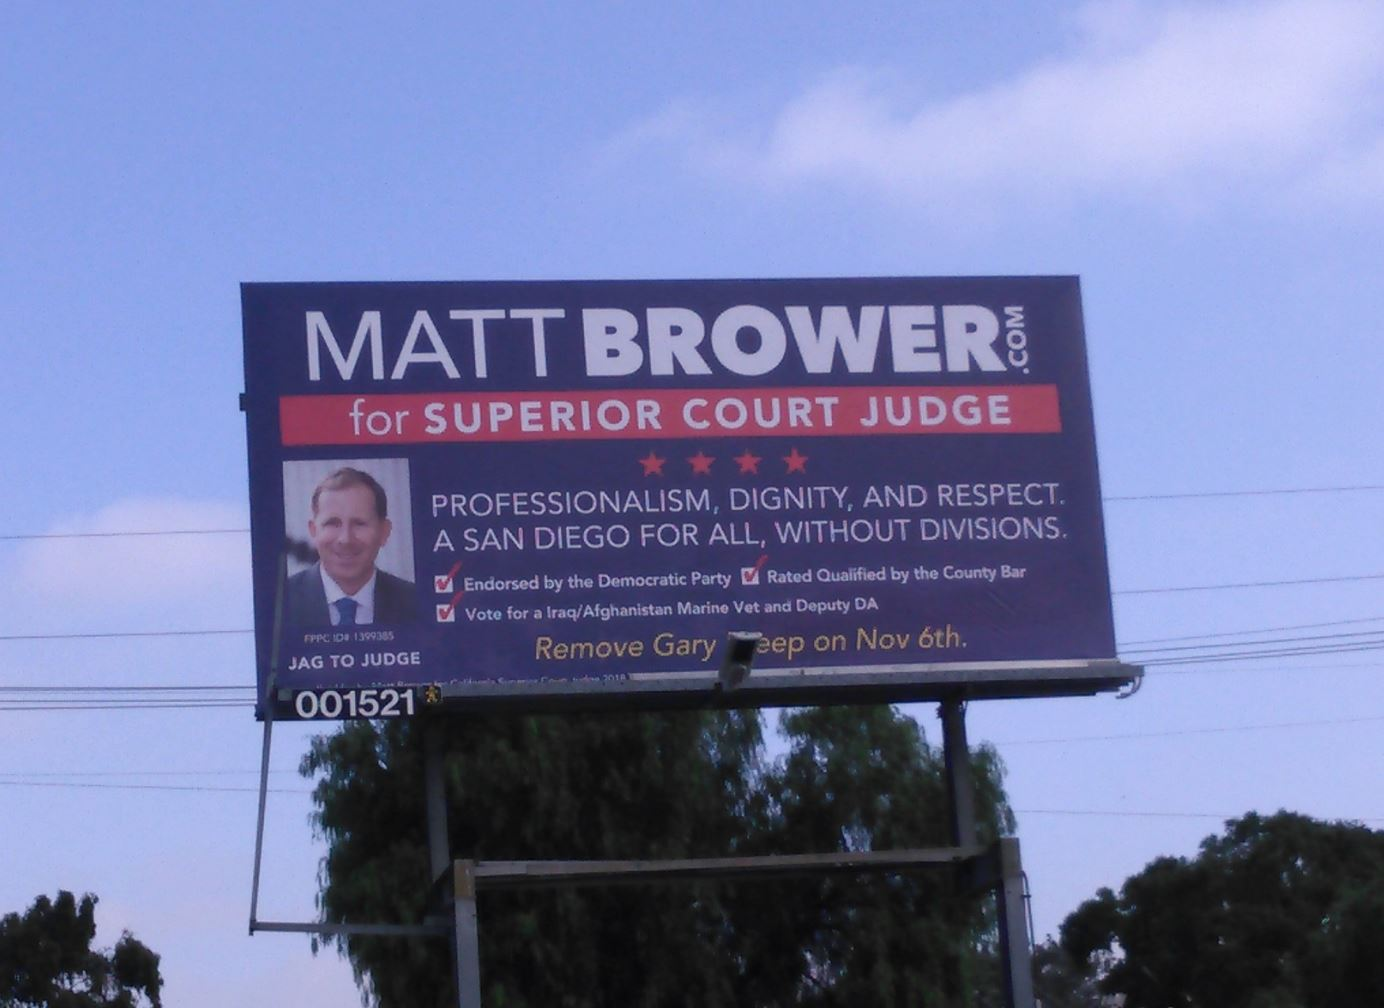 Brower 4 Judge Billboard in North Park Oct 18